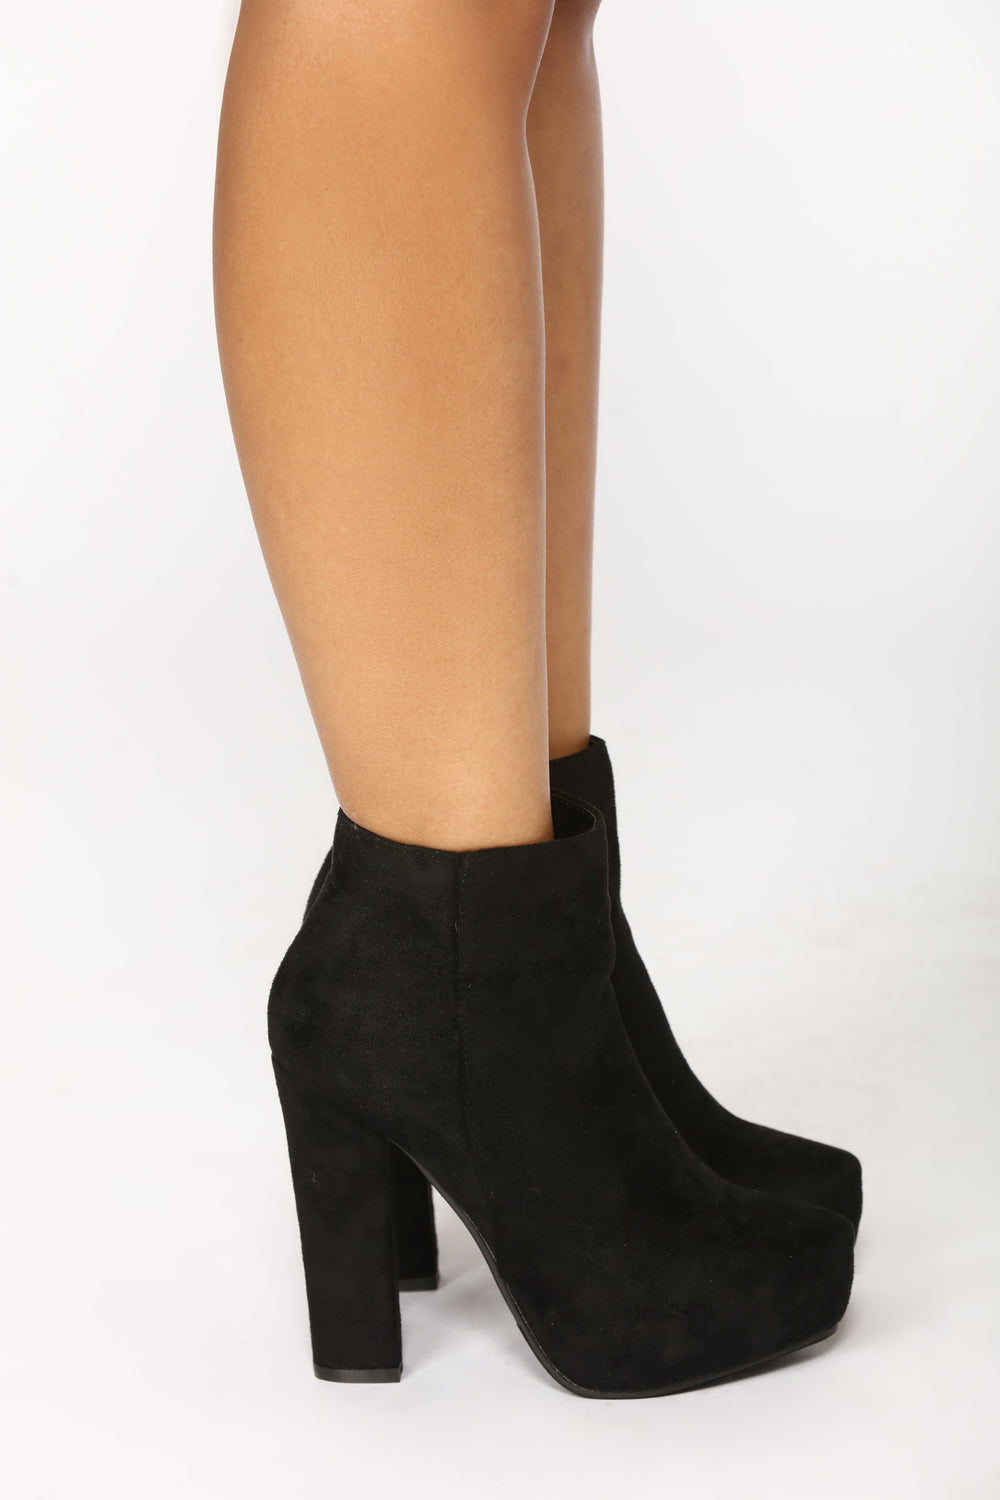 So Elevated Bootie - Black